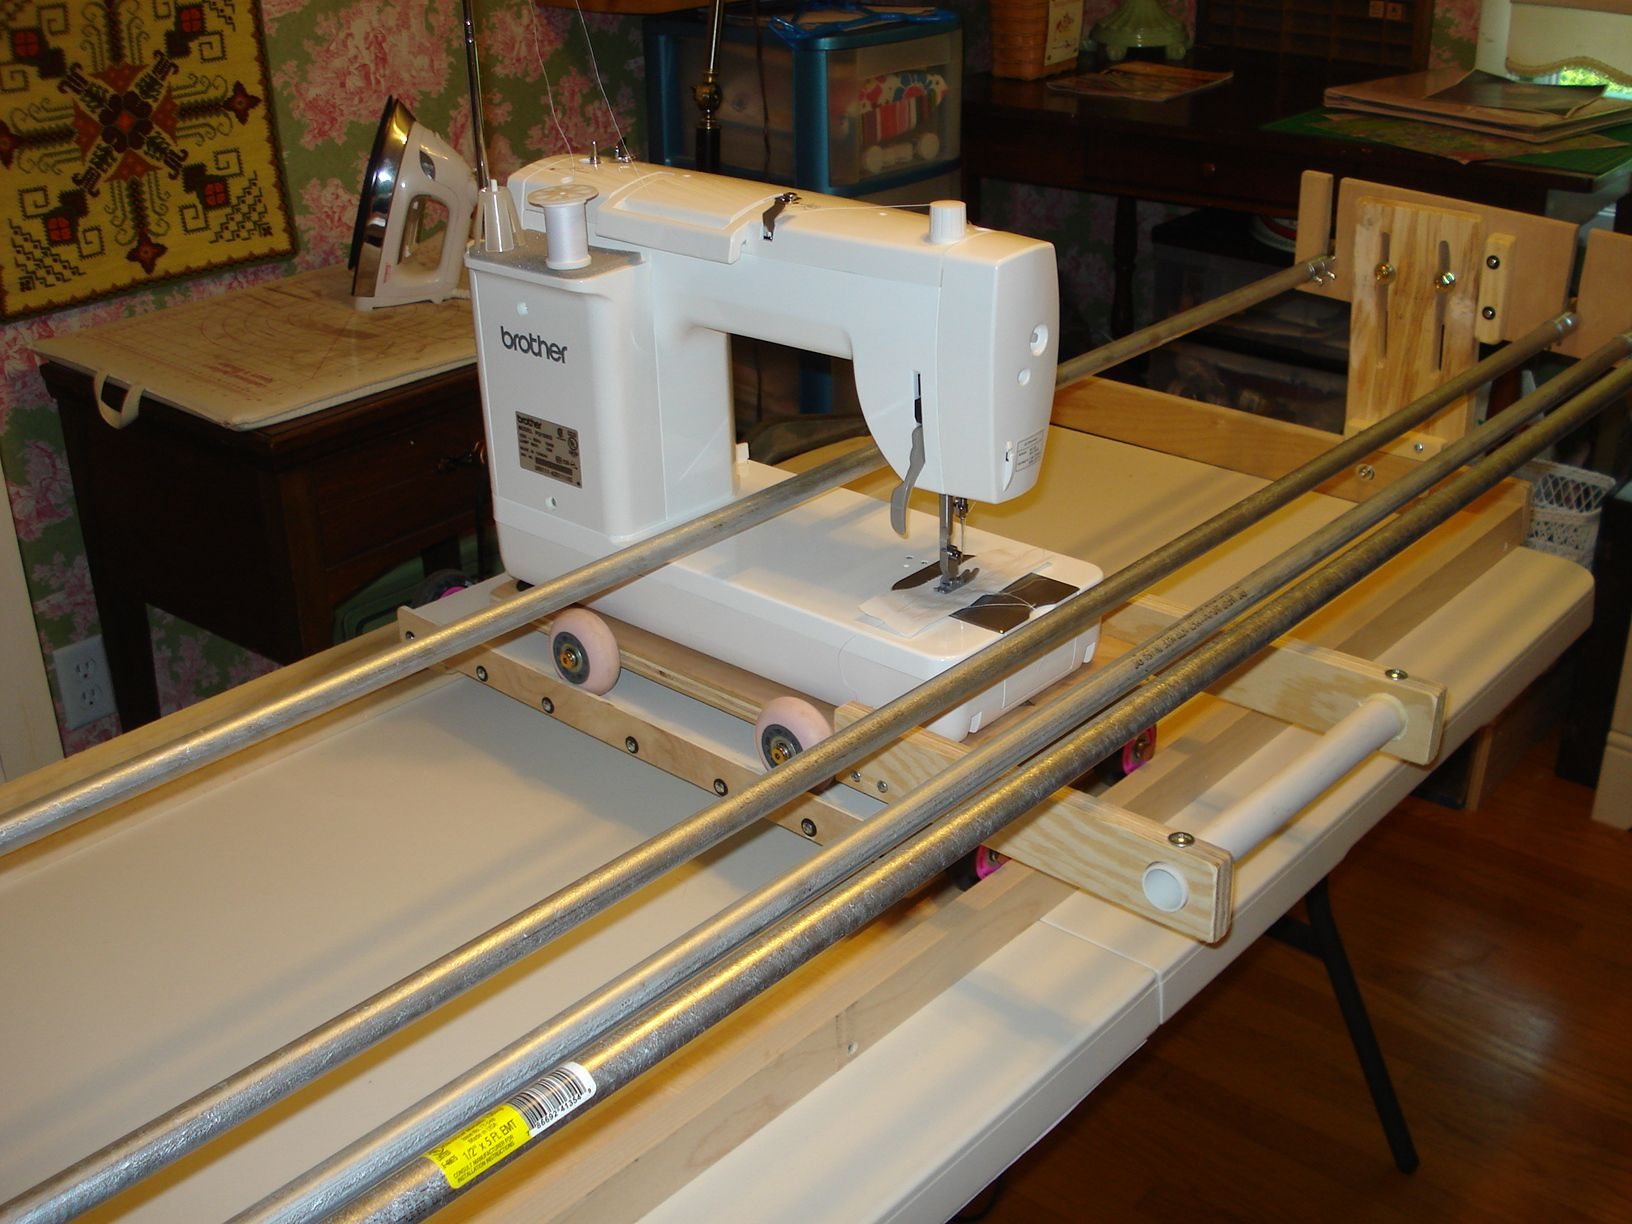 machine quilt frame | Thread: machine quilting frame | quilts ... : homemade quilting frame - Adamdwight.com